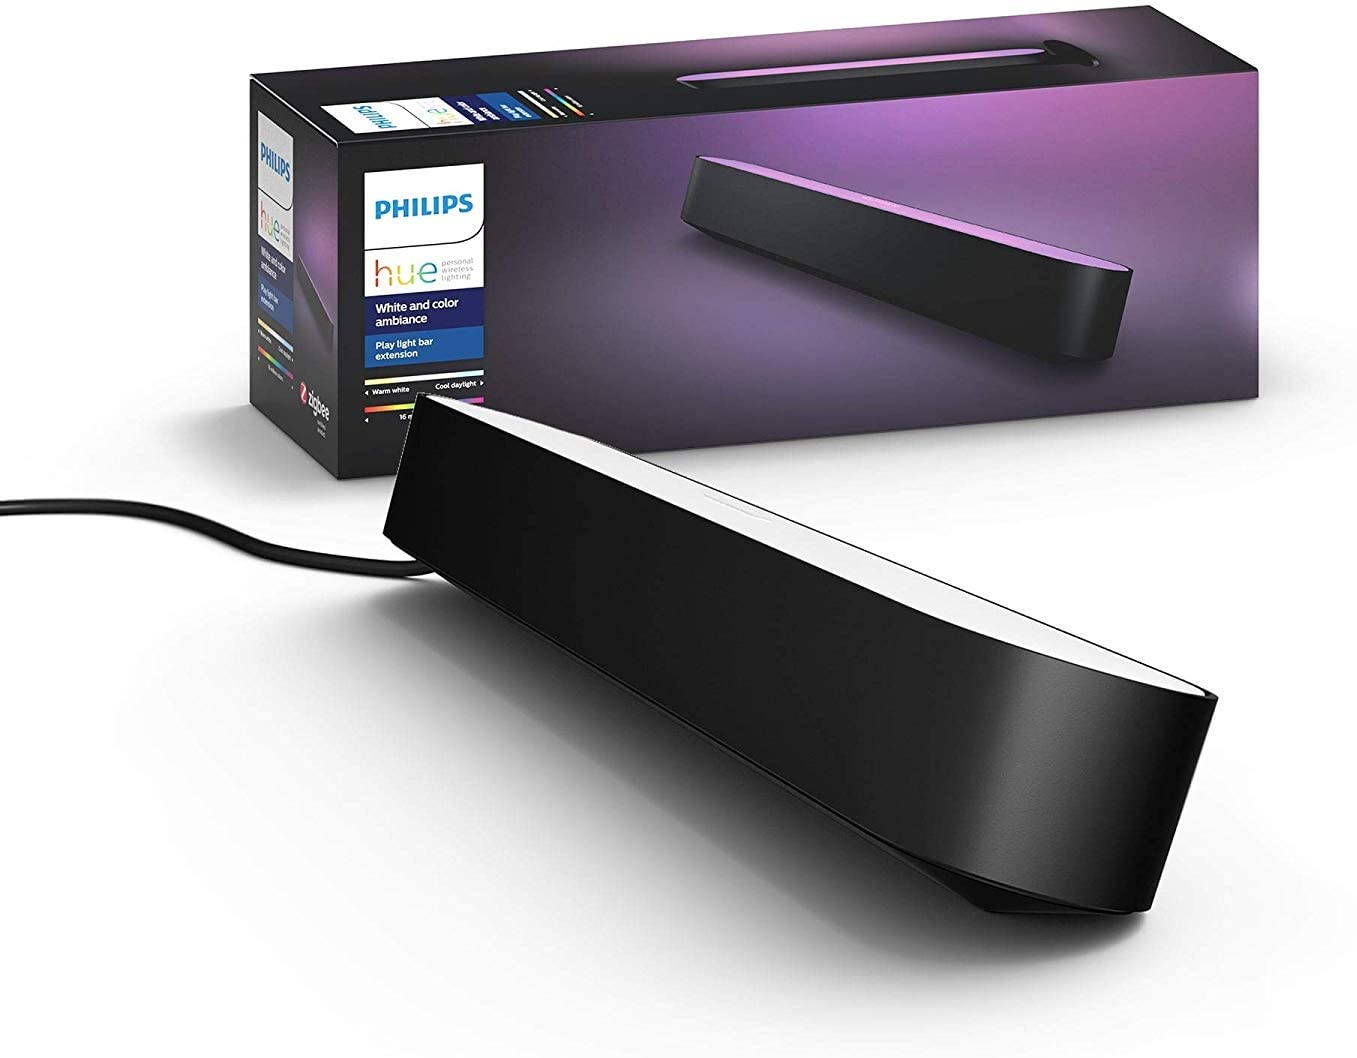 Philips Hue White and Color Ambiance Play Lightbar -